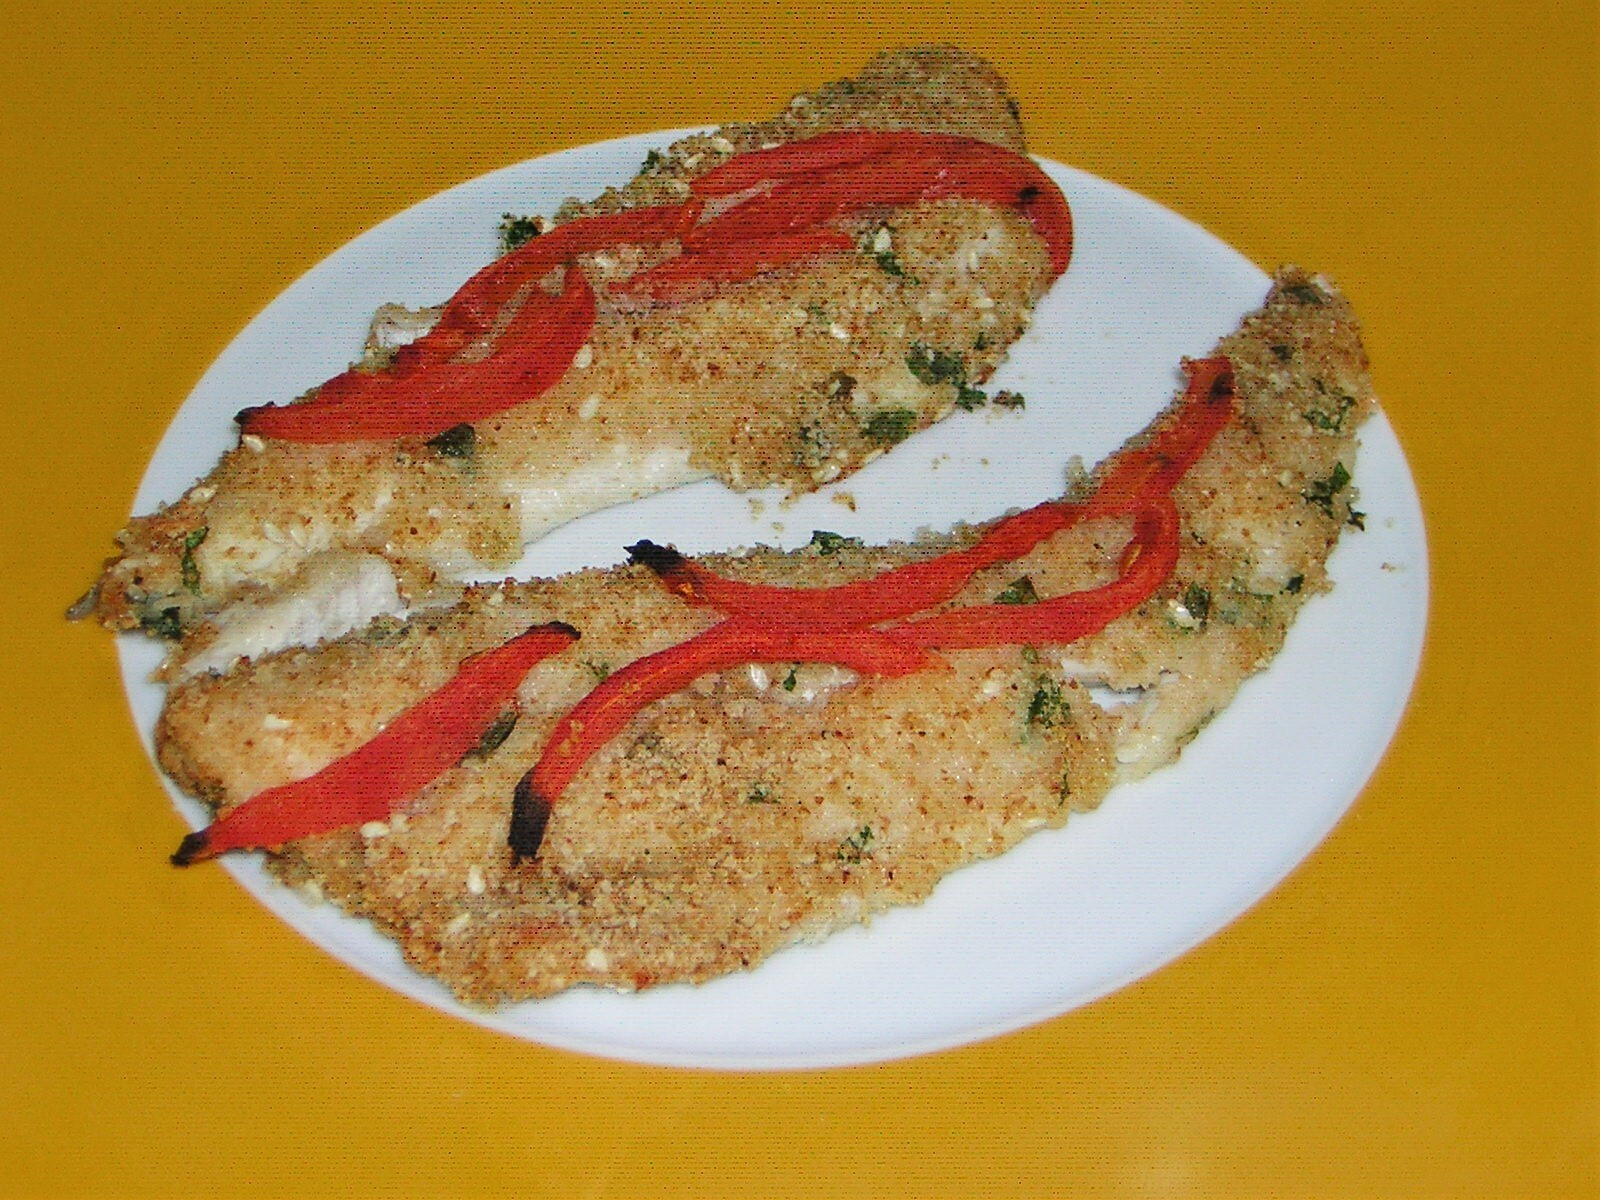 Filetti di gallinella al forno